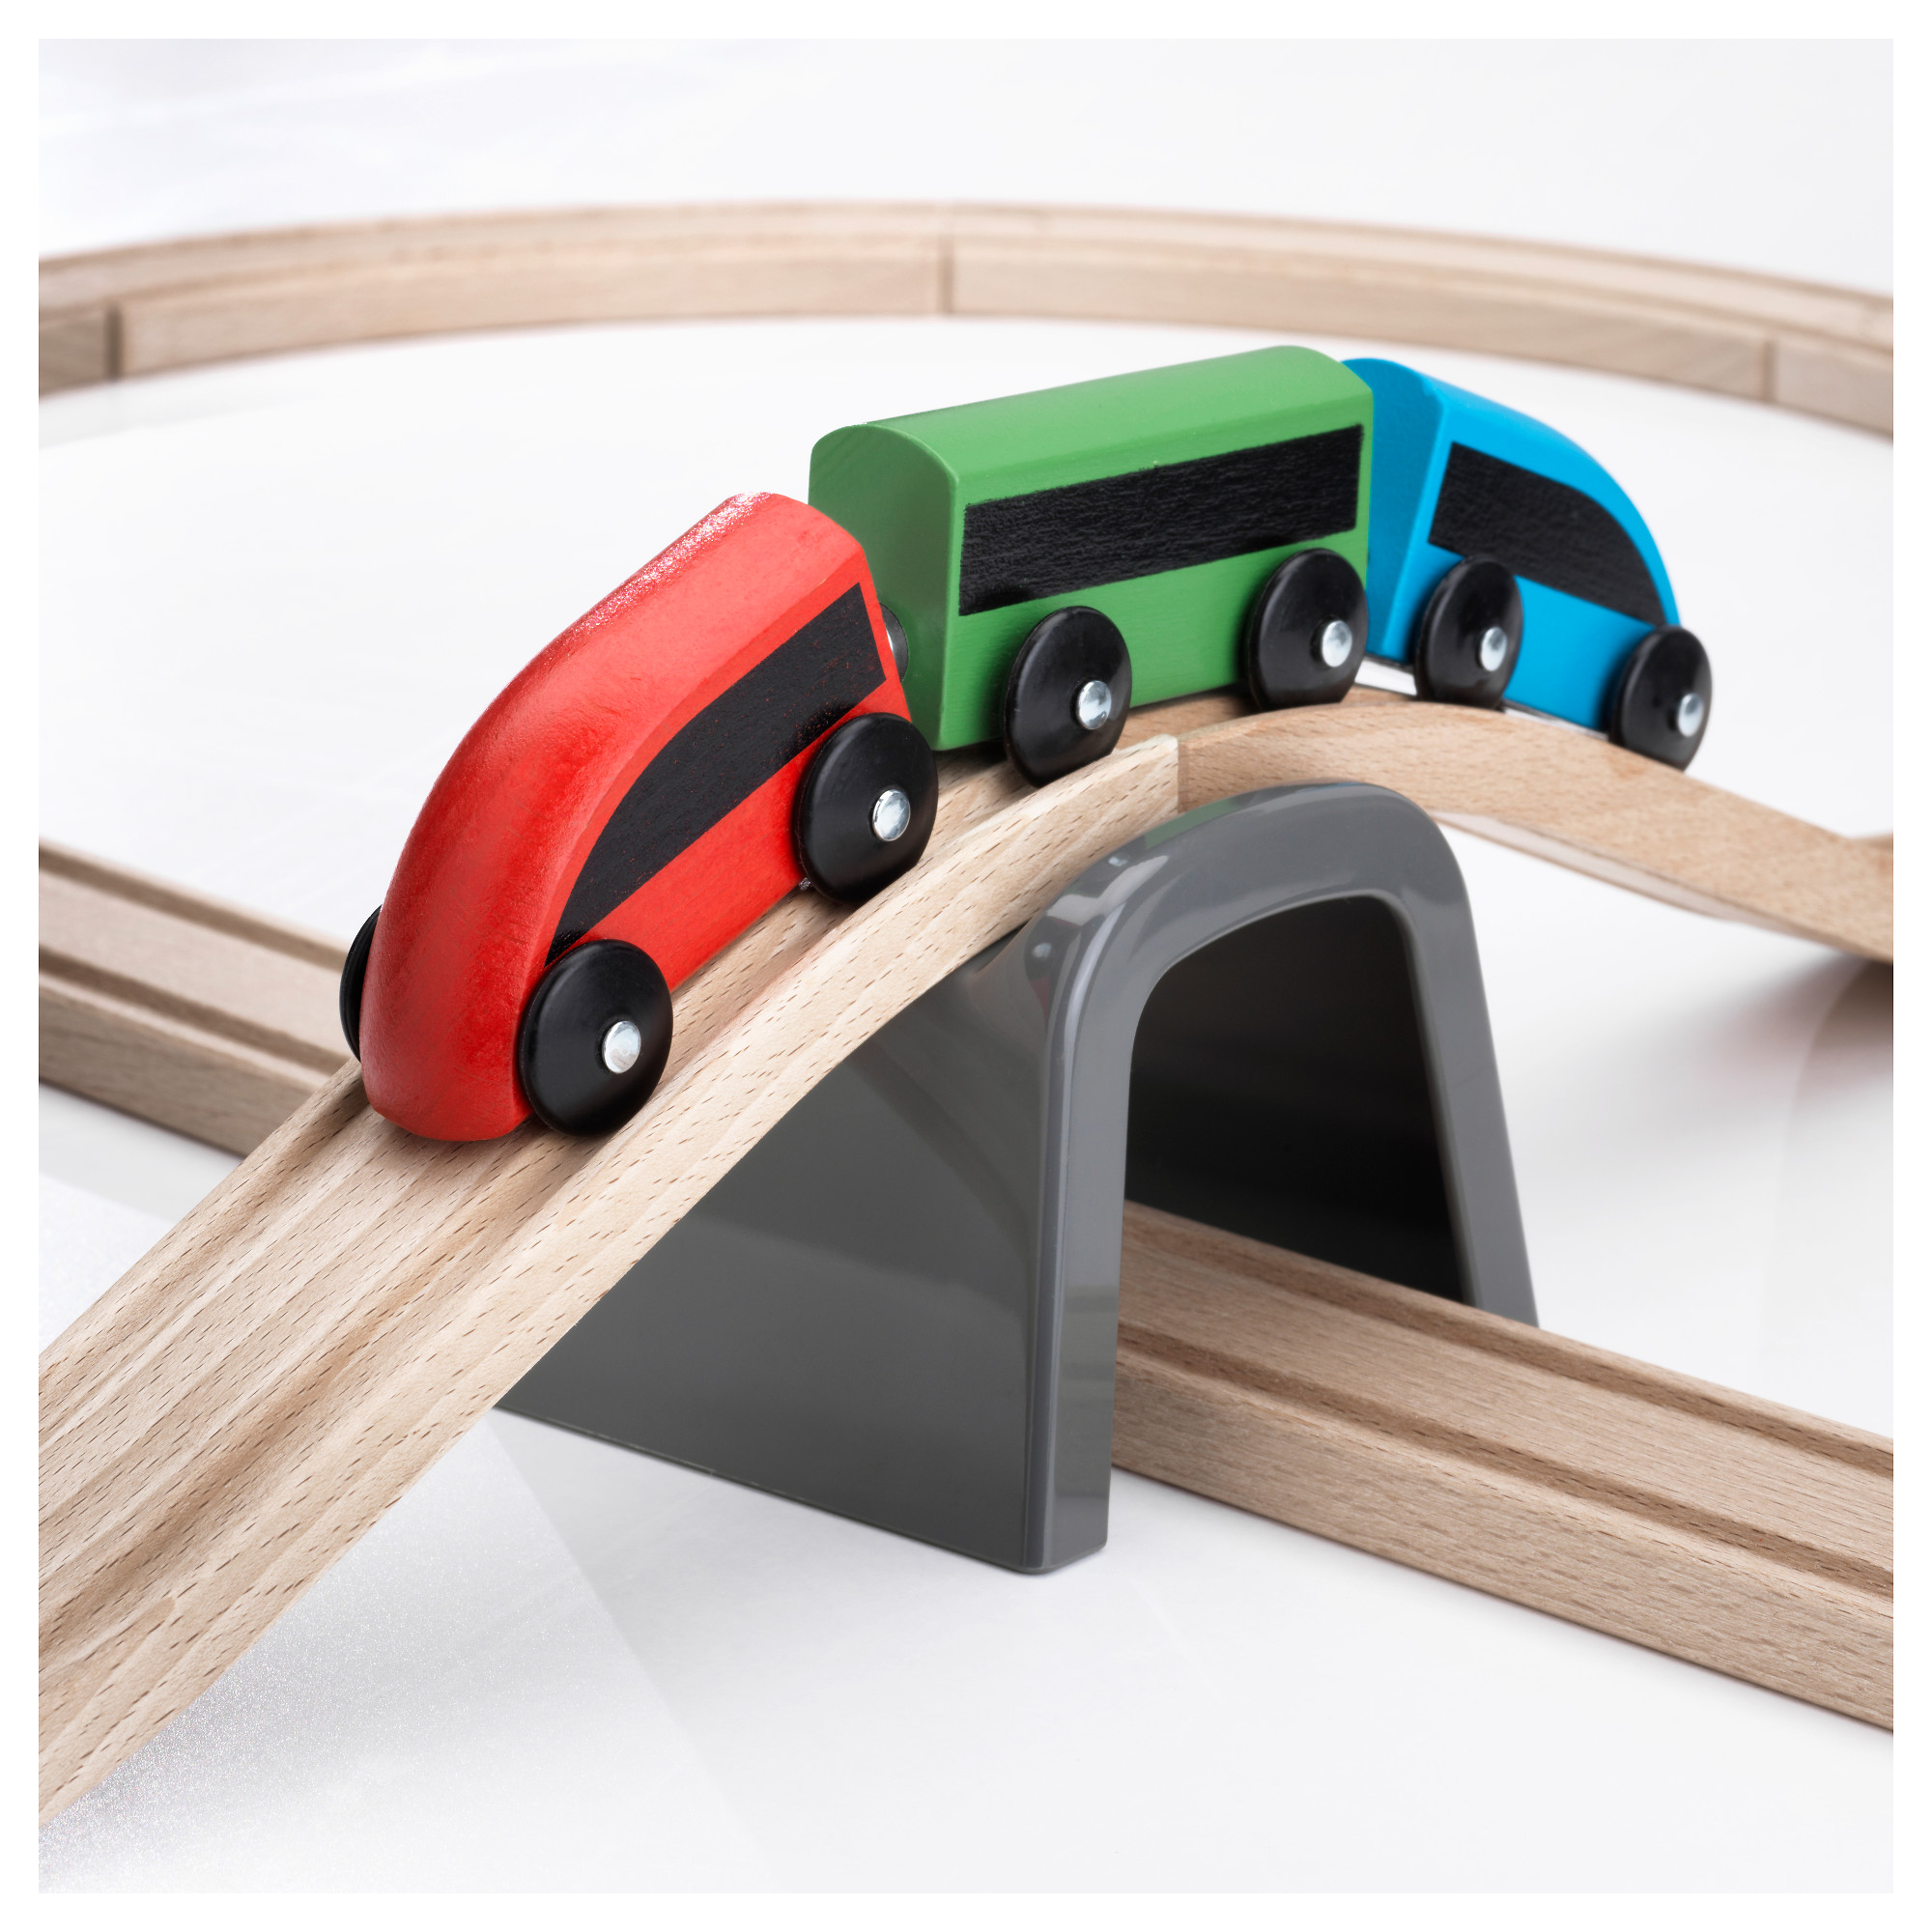 20-piece basic train set LILLABO multicolour